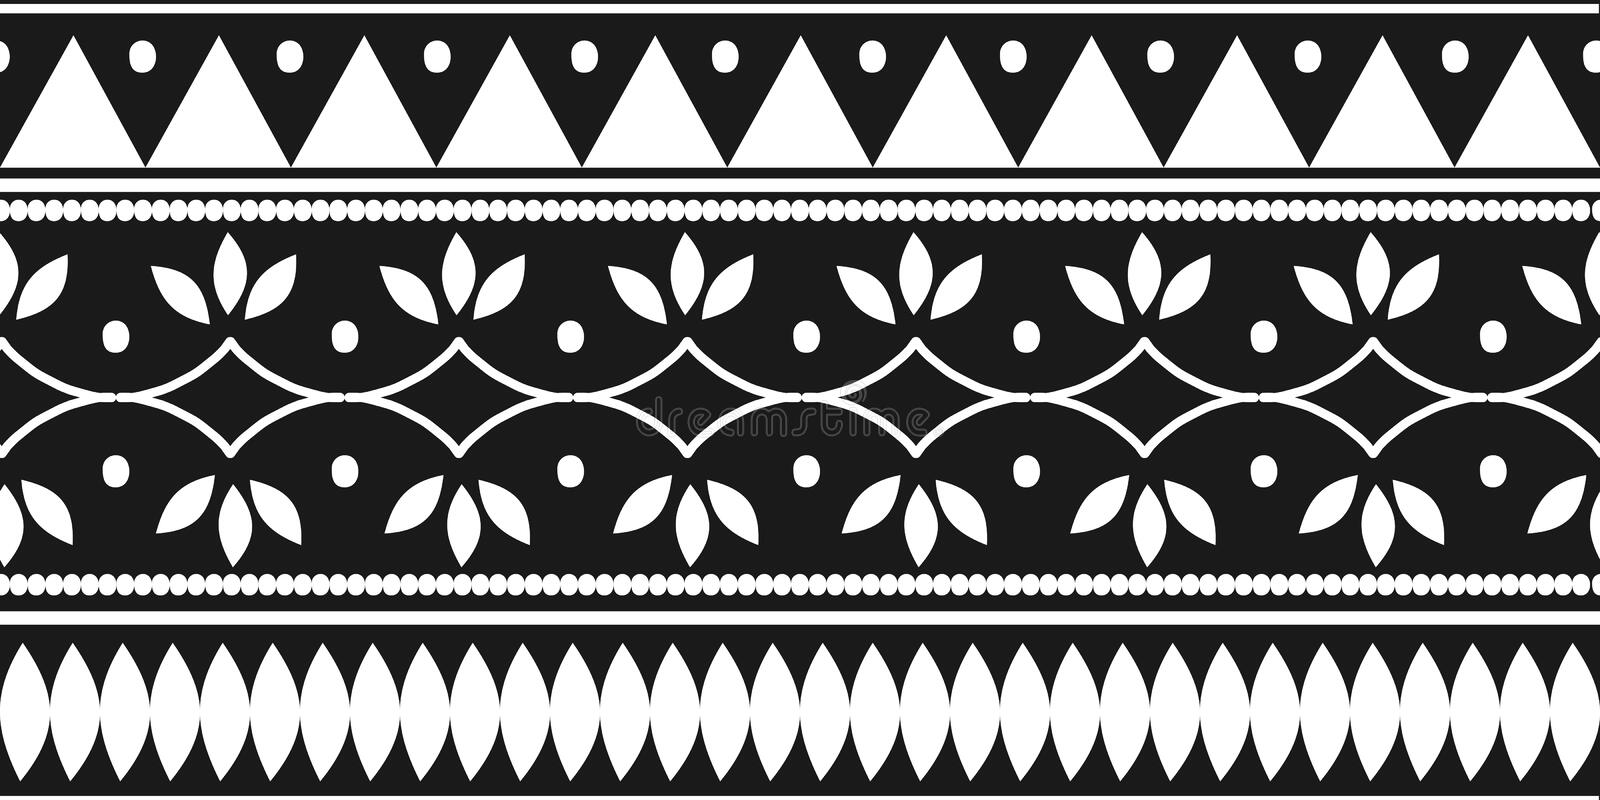 Tribal ethnic seamless pattern with black and white colors. Background traditional symbol drawing for fashion textile print and vector illustration